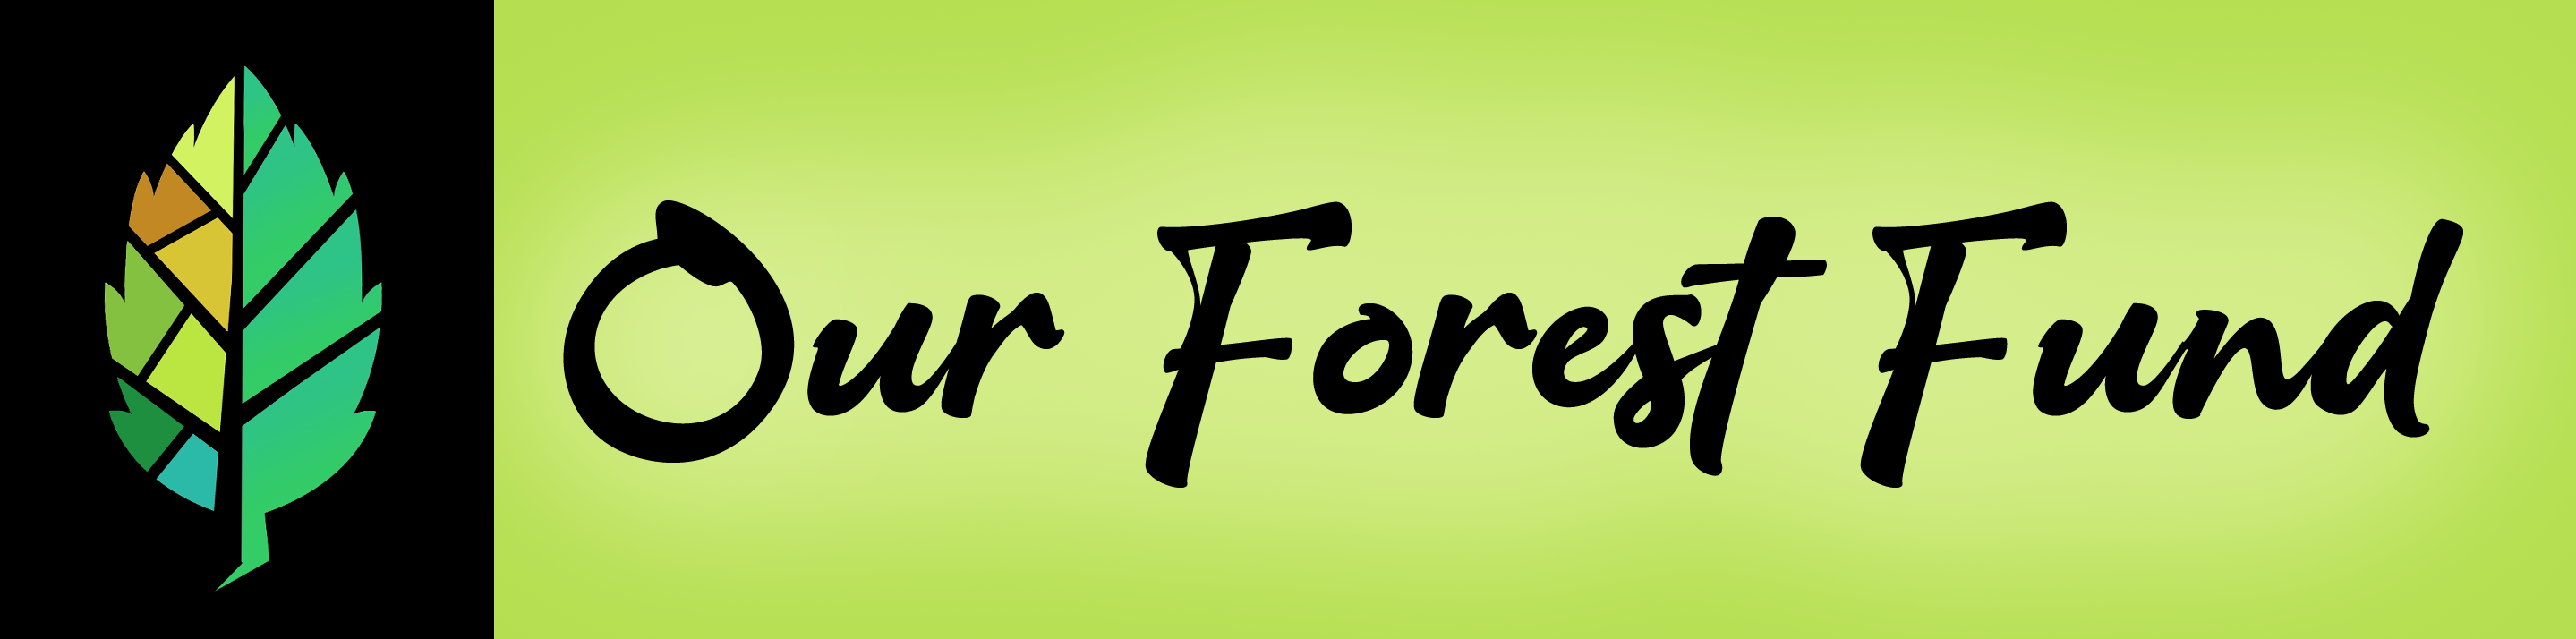 Our Forest Fund